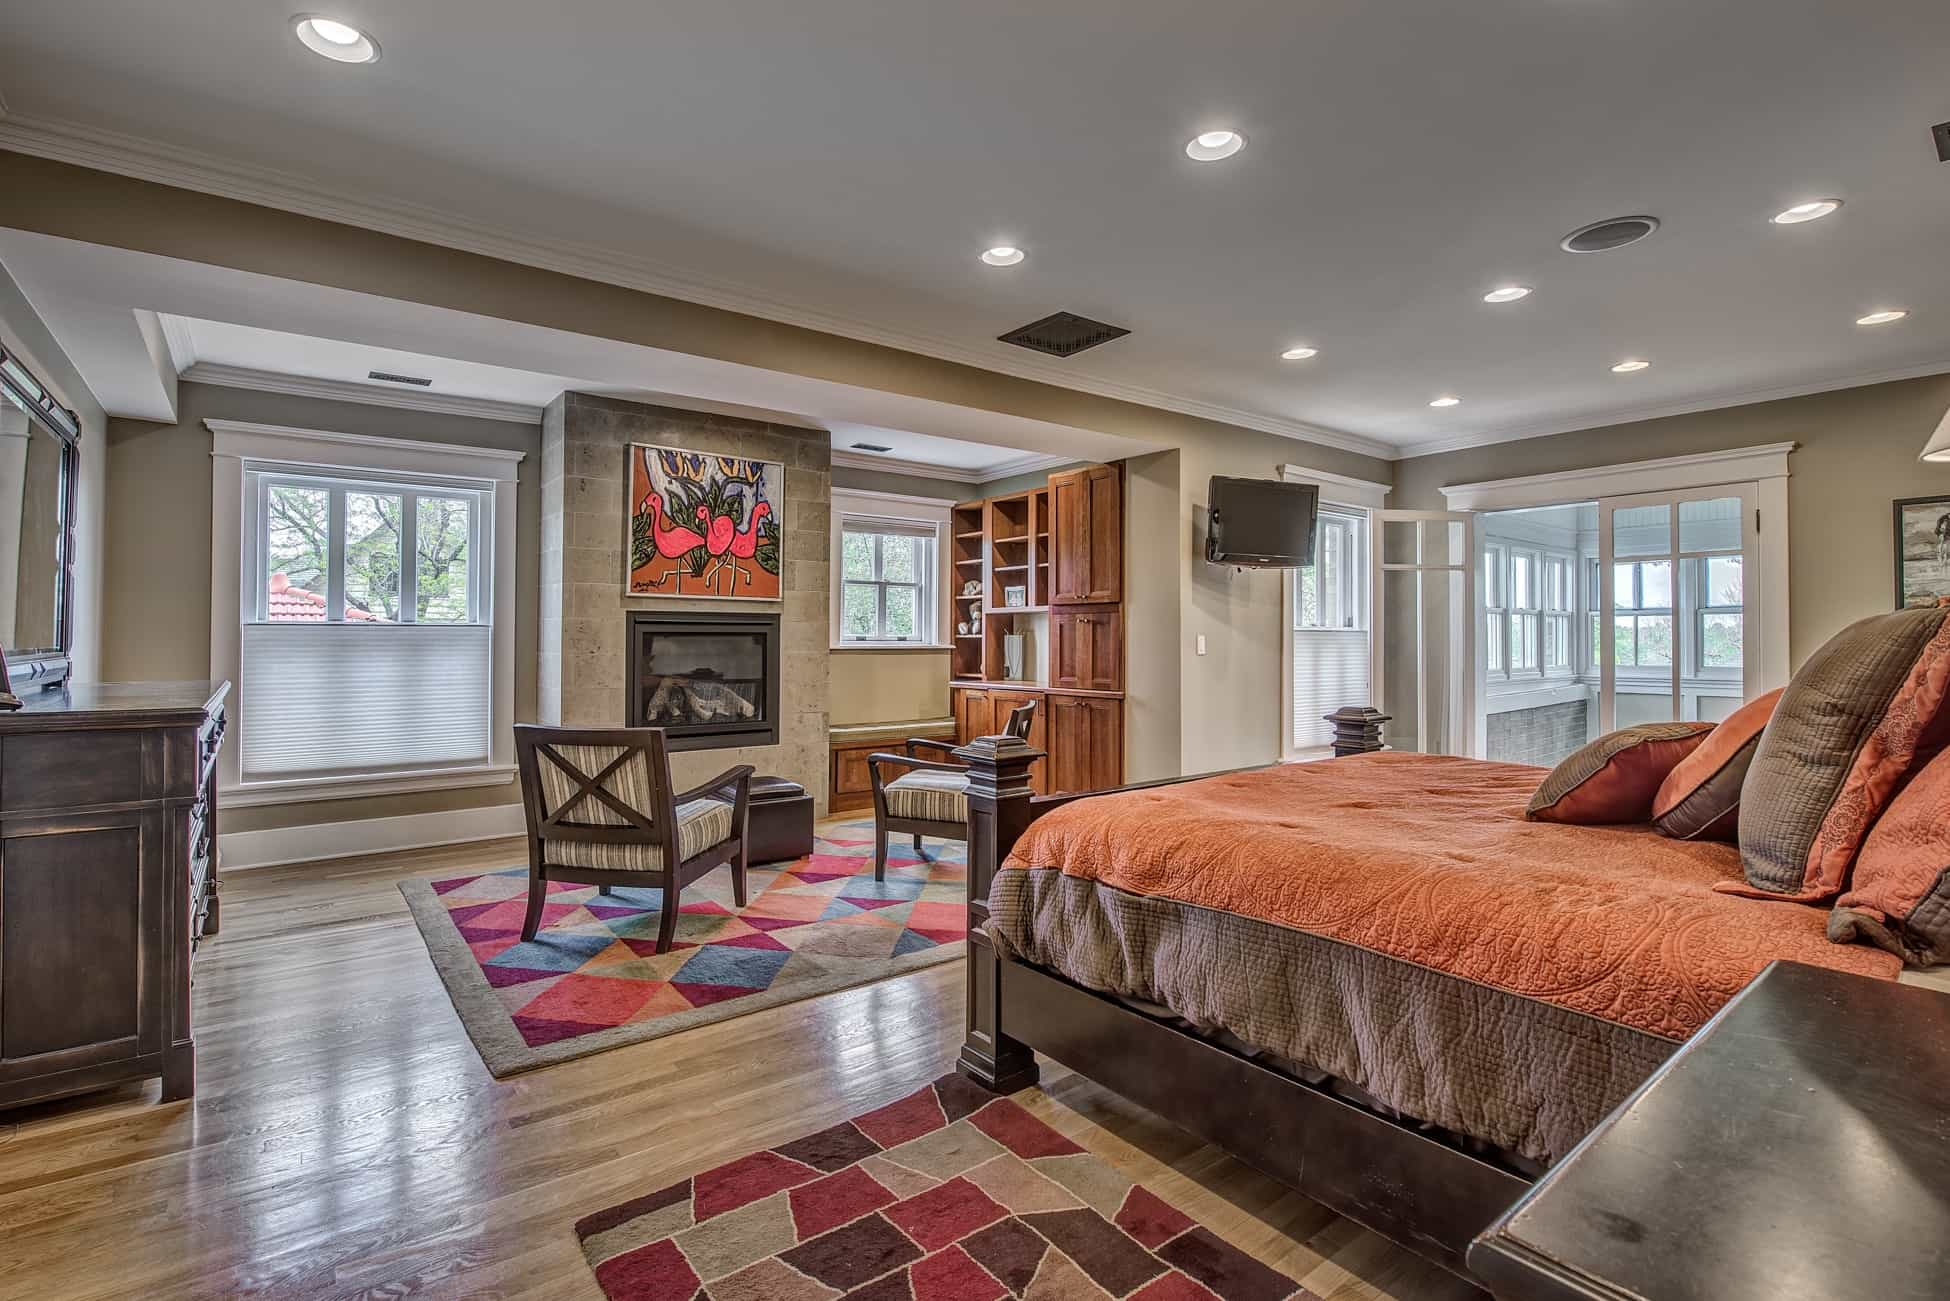 Colorful Geometric Rug For Traditional Bedroom Interior (View 18 of 28)